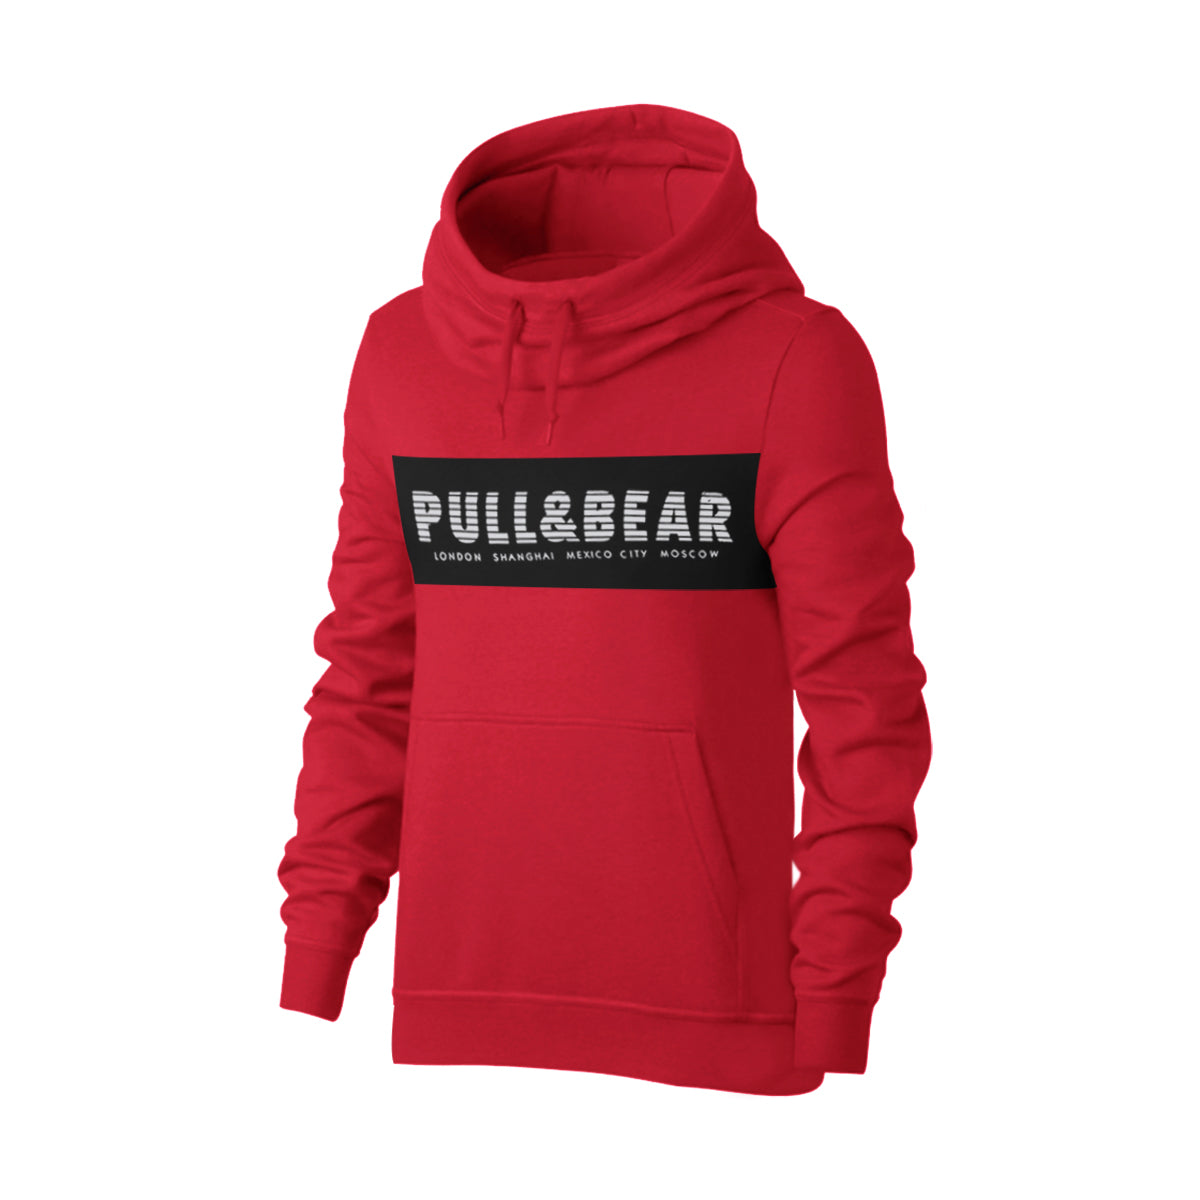 P&B Fleece Pullover Hoodie For Men-Dark Red With Black Panel-BE13828